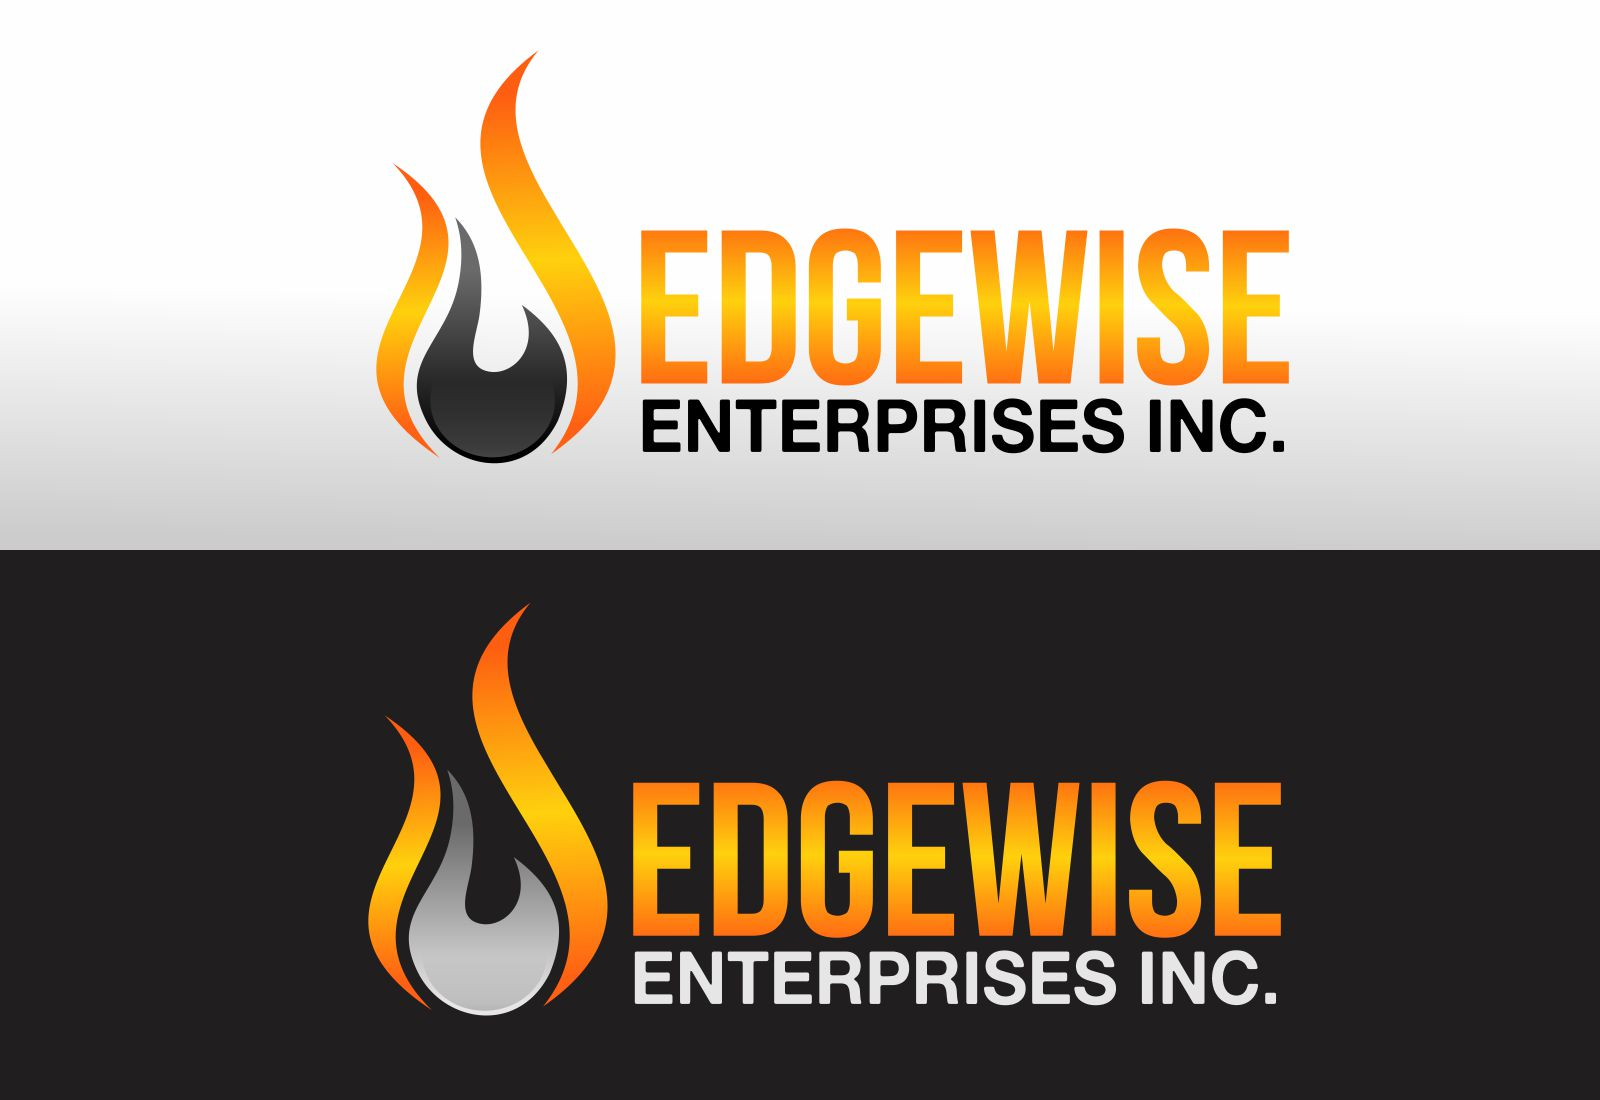 Logo Design by Web Sourcing - Entry No. 54 in the Logo Design Contest New Logo Design for Edgewise Enterprises Inc..